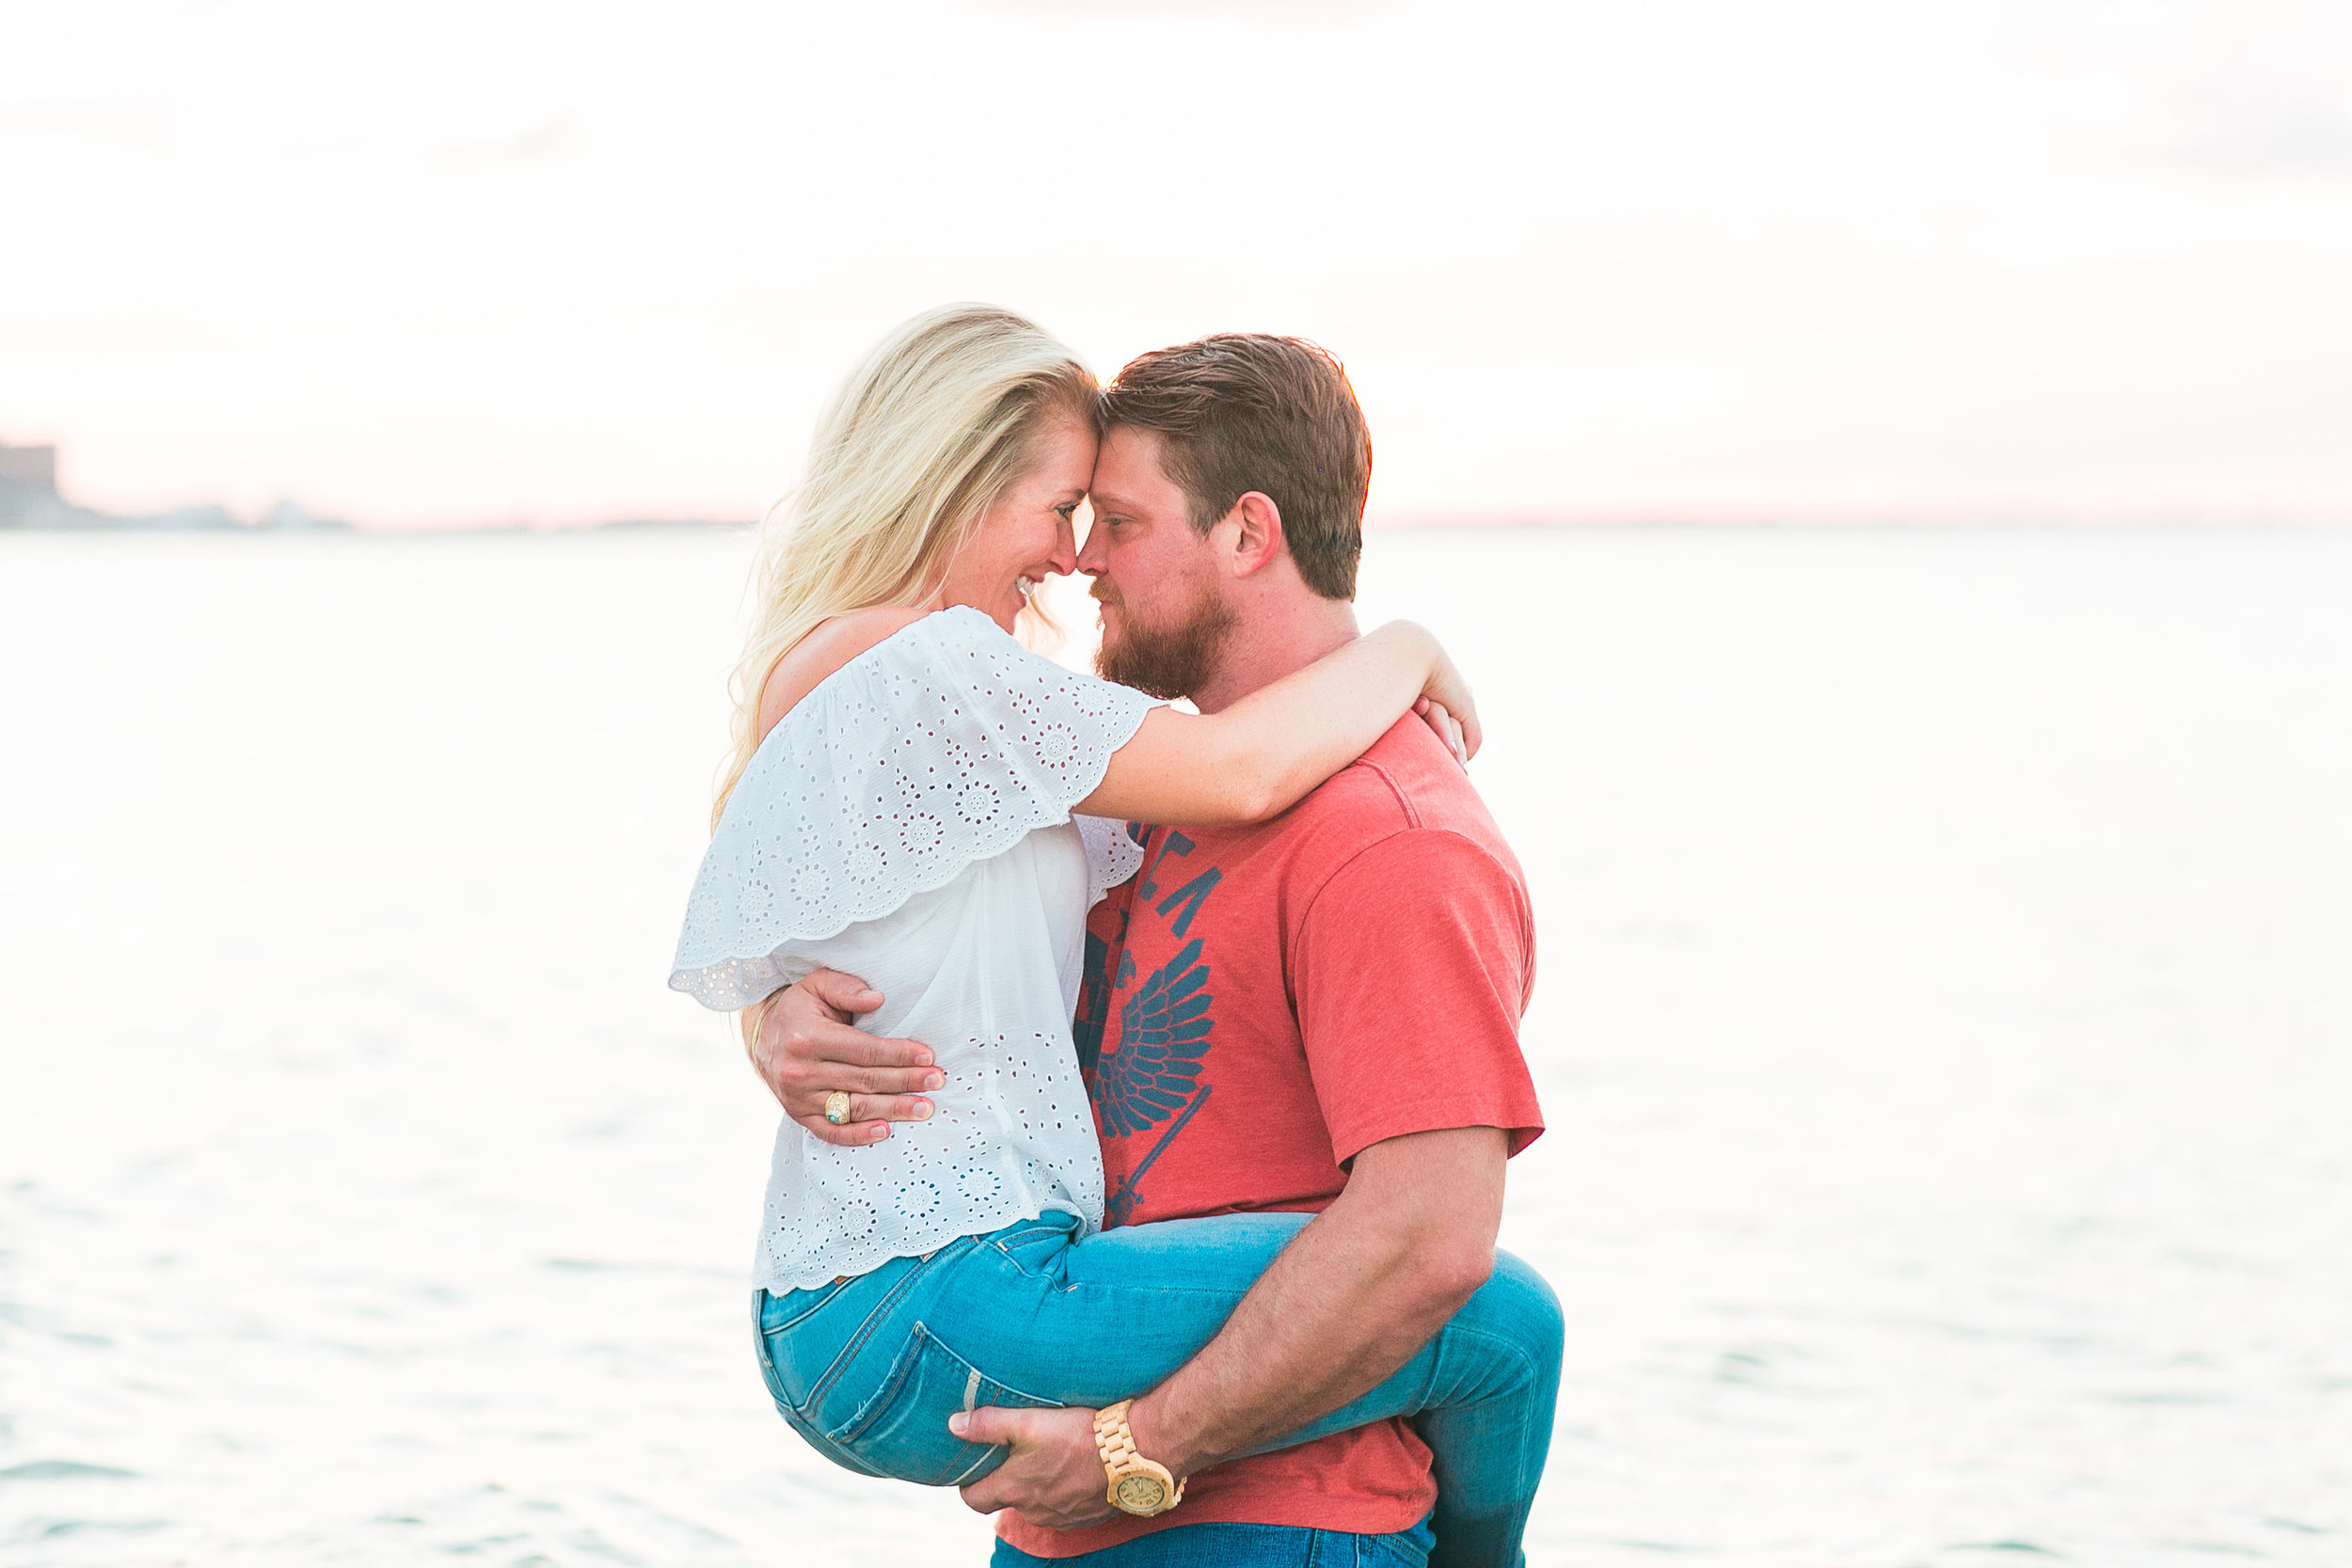 Chelsea&Jordan_Engaged-224.jpg